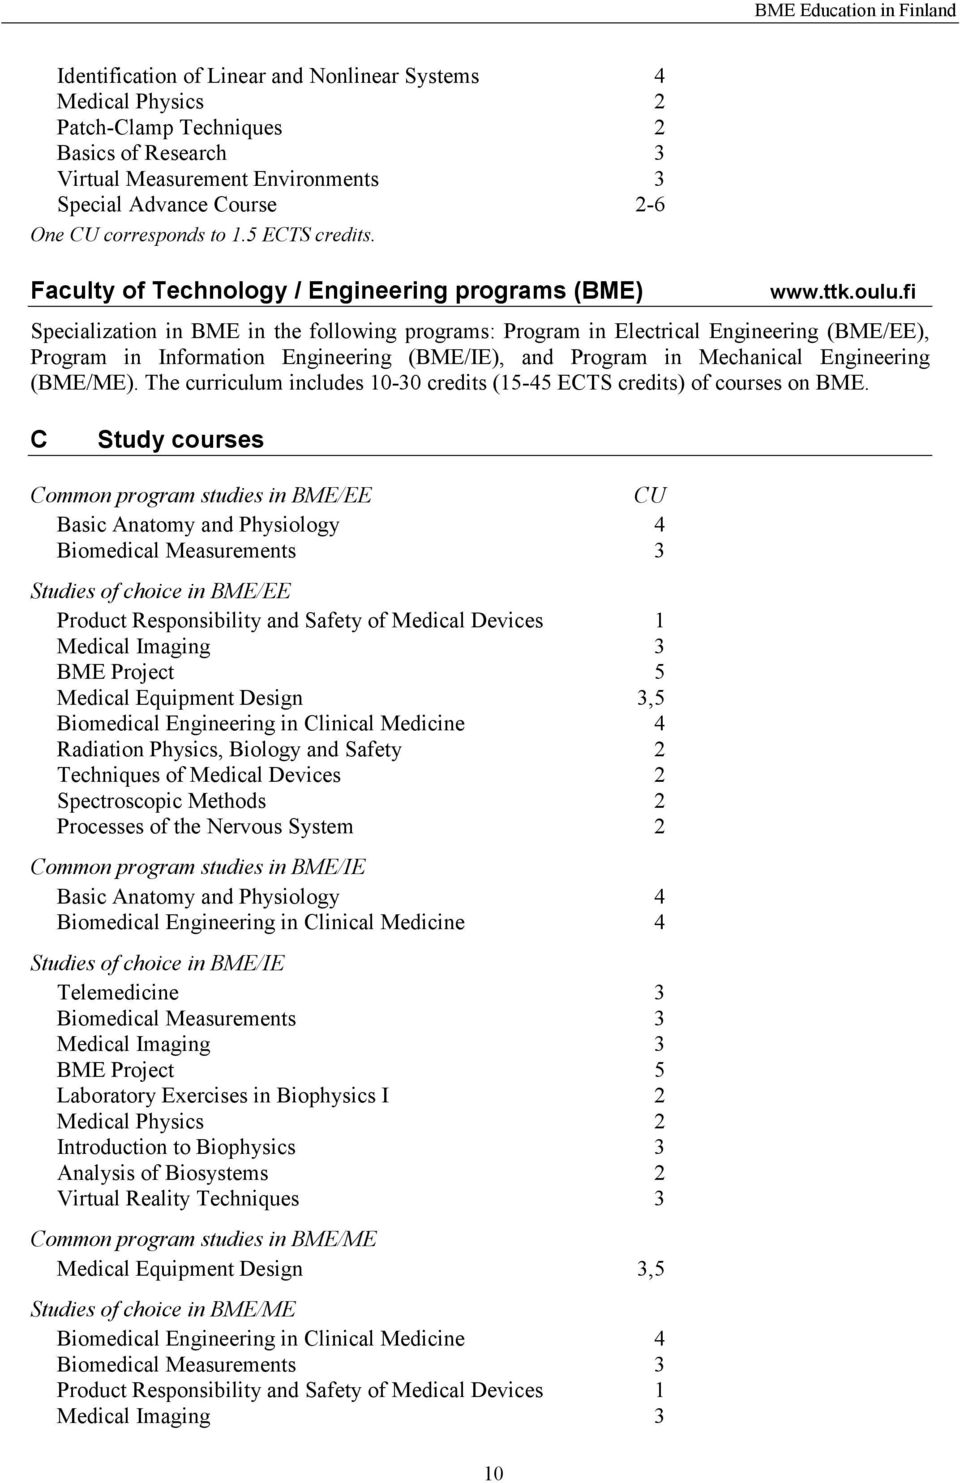 fi Specialization in BME in the following programs: Program in Electrical Engineering (BME/EE), Program in Information Engineering (BME/IE), and Program in Mechanical Engineering (BME/ME).